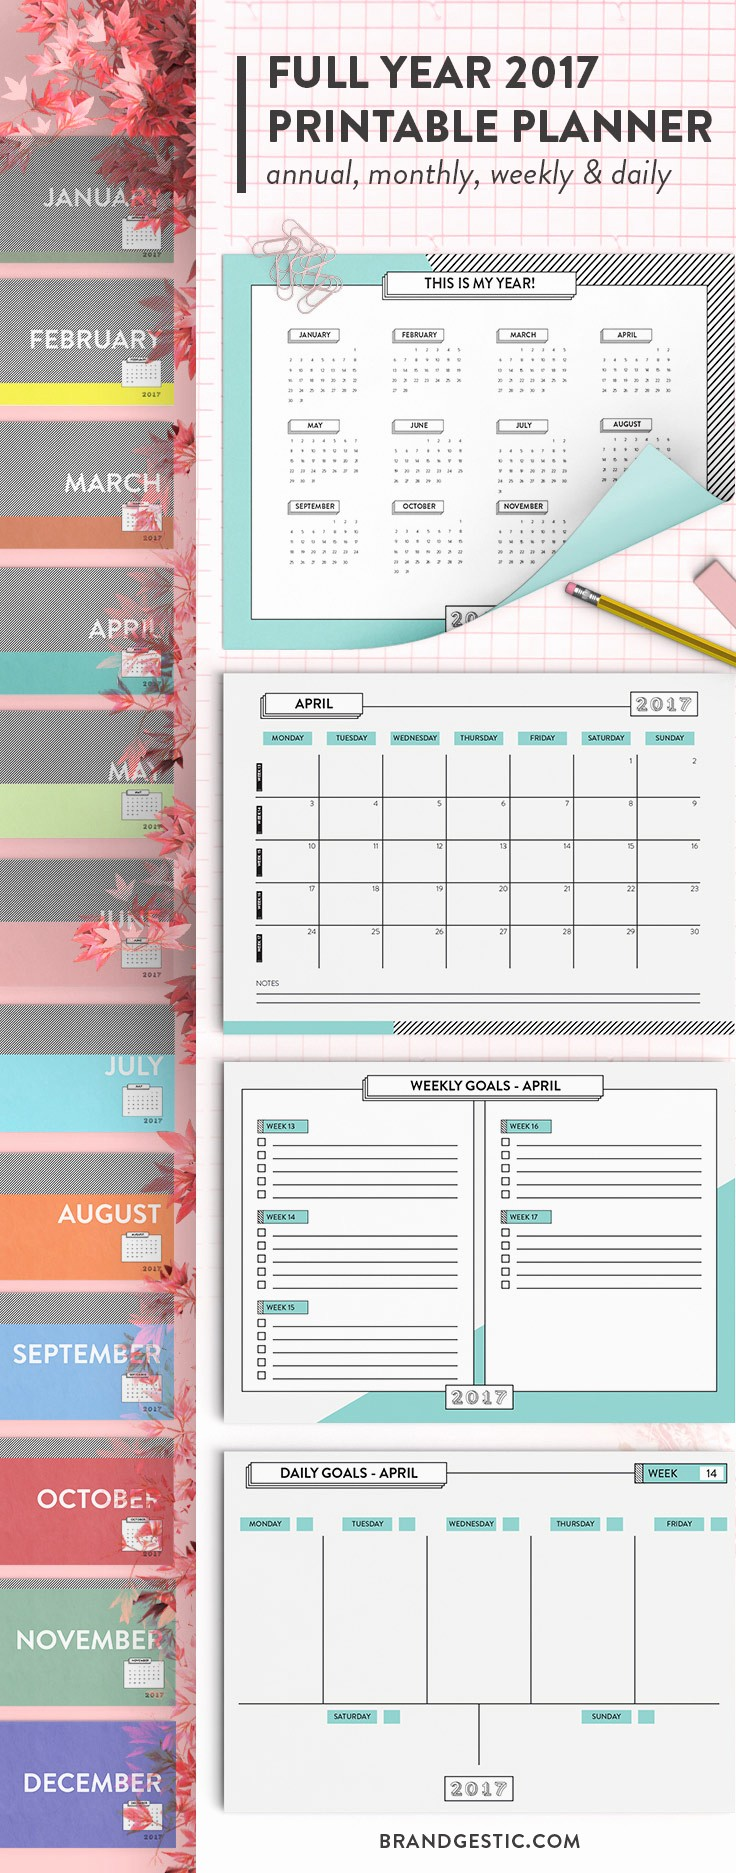 2017 Full Year Printable Calendar Lovely Printable Calendar & Planner